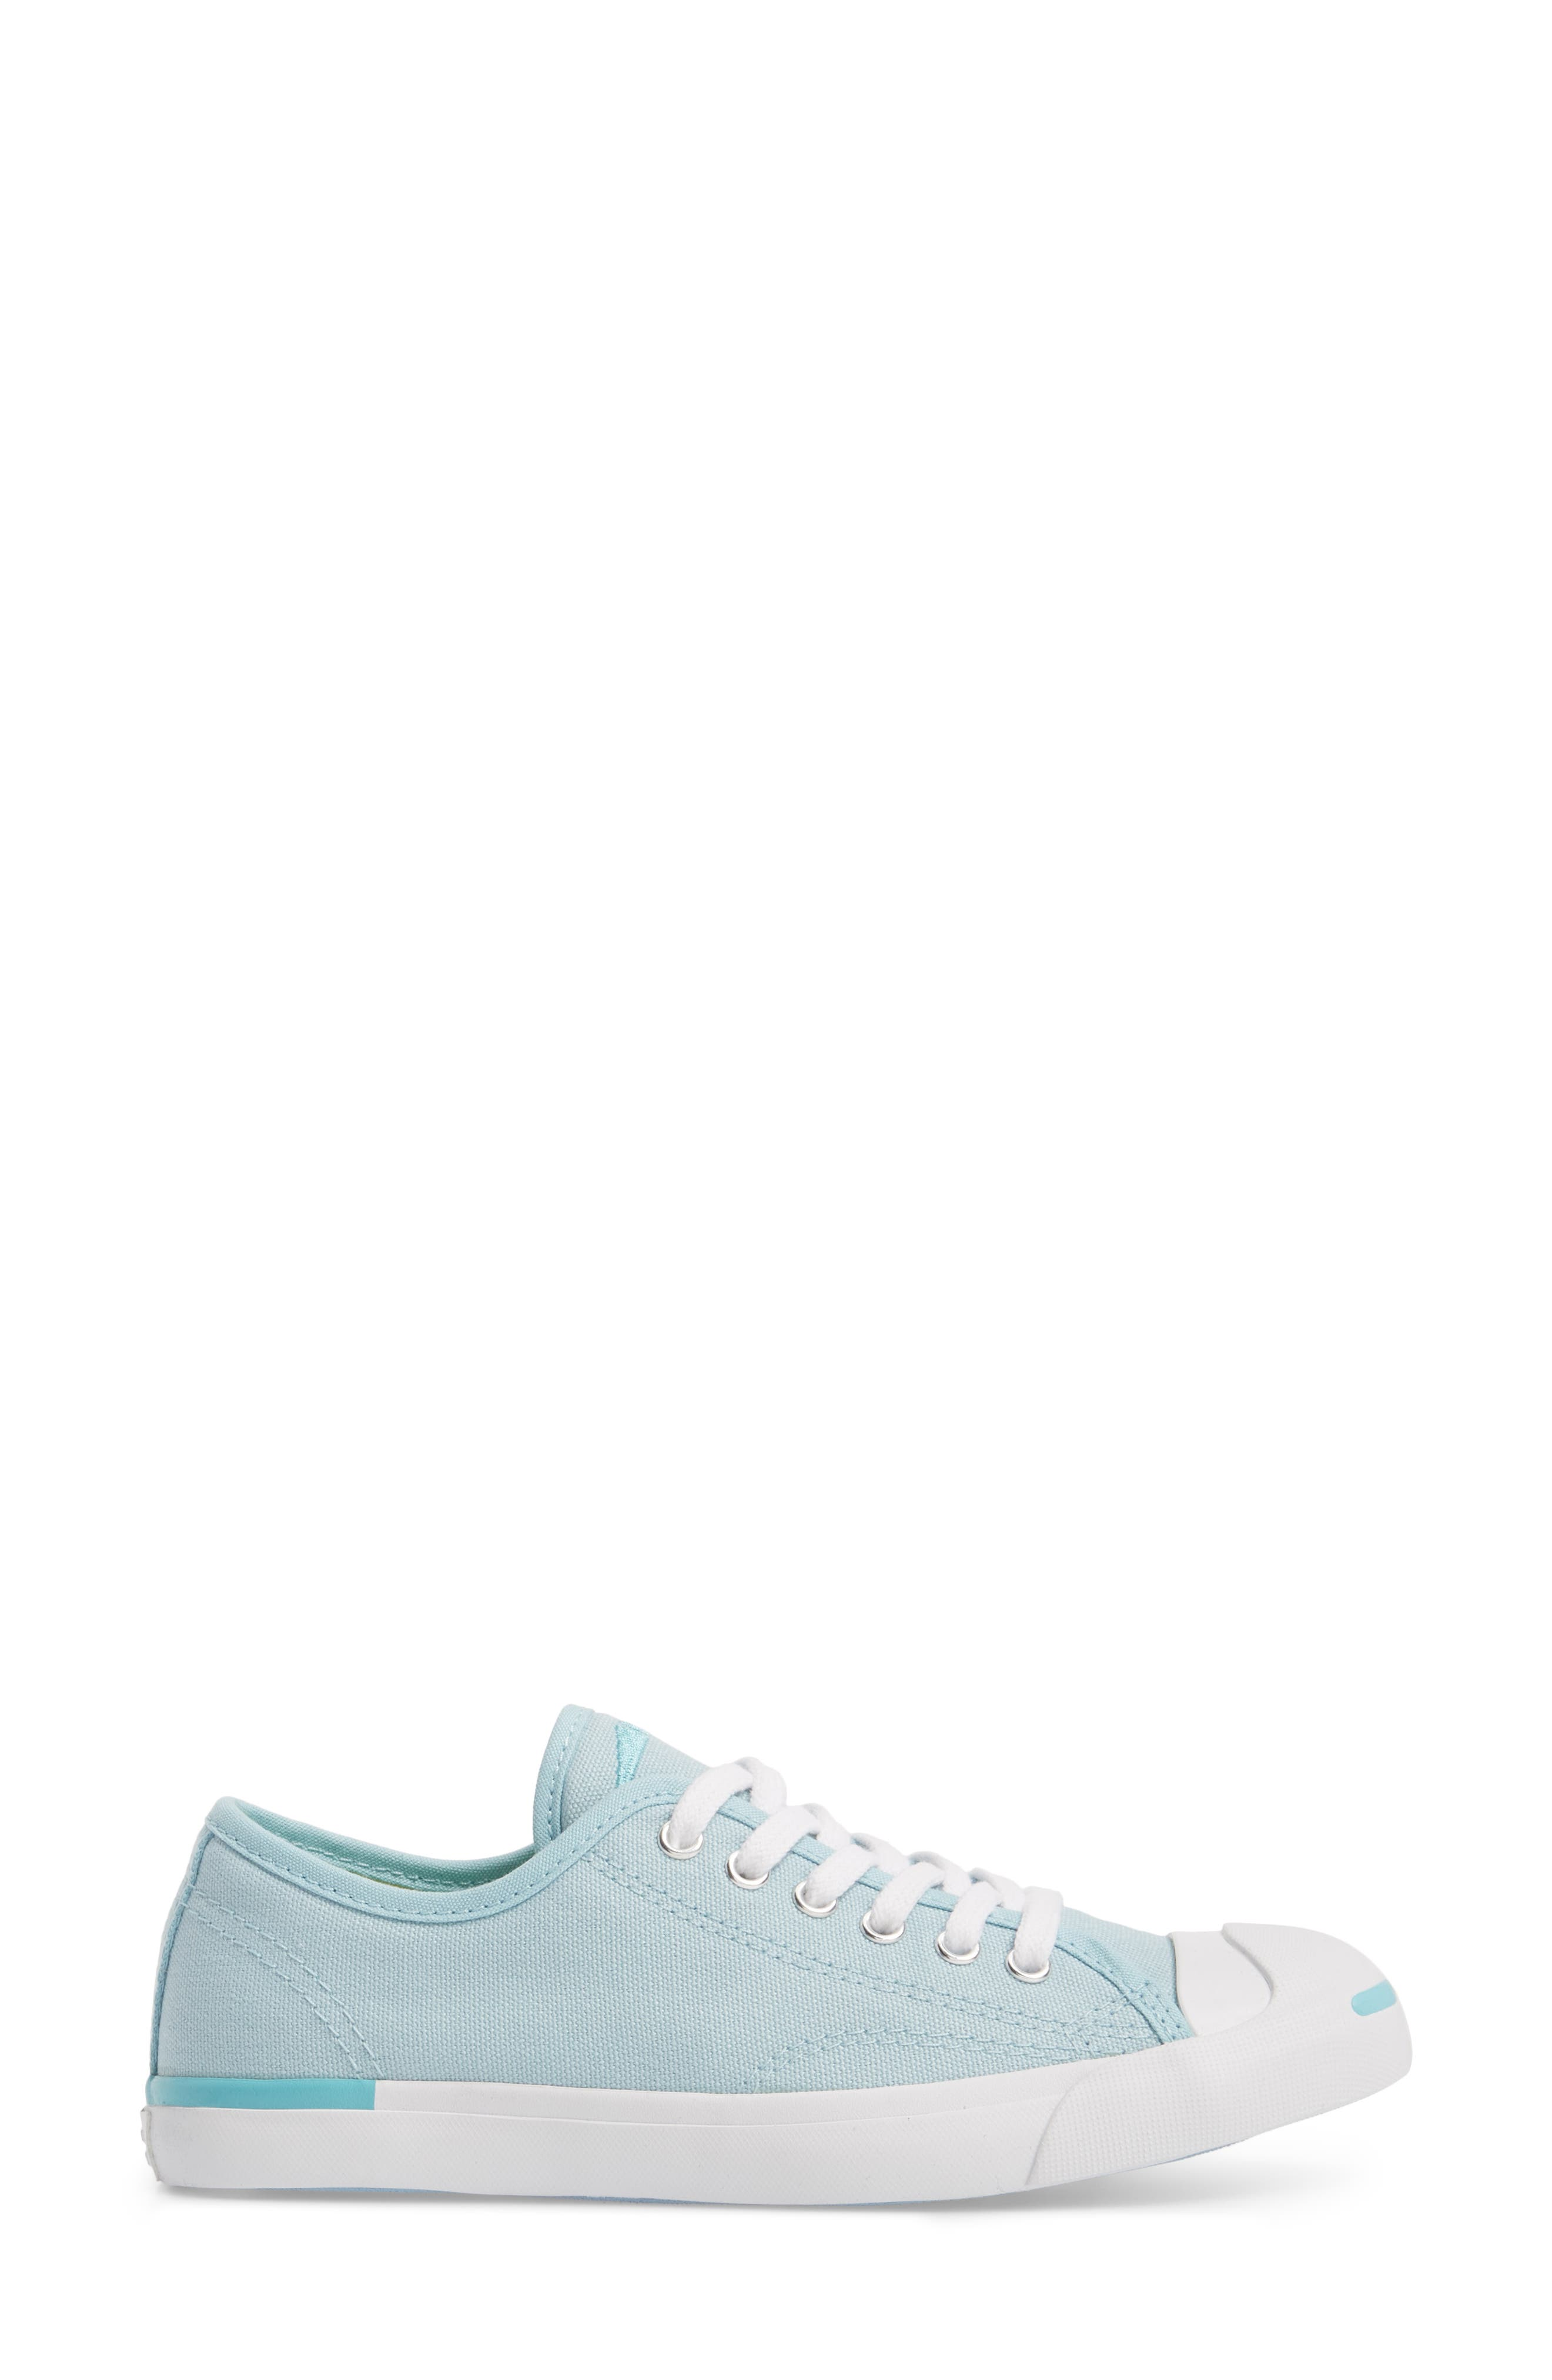 ,                             Jack Purcell Low Top Sneaker,                             Alternate thumbnail 39, color,                             456